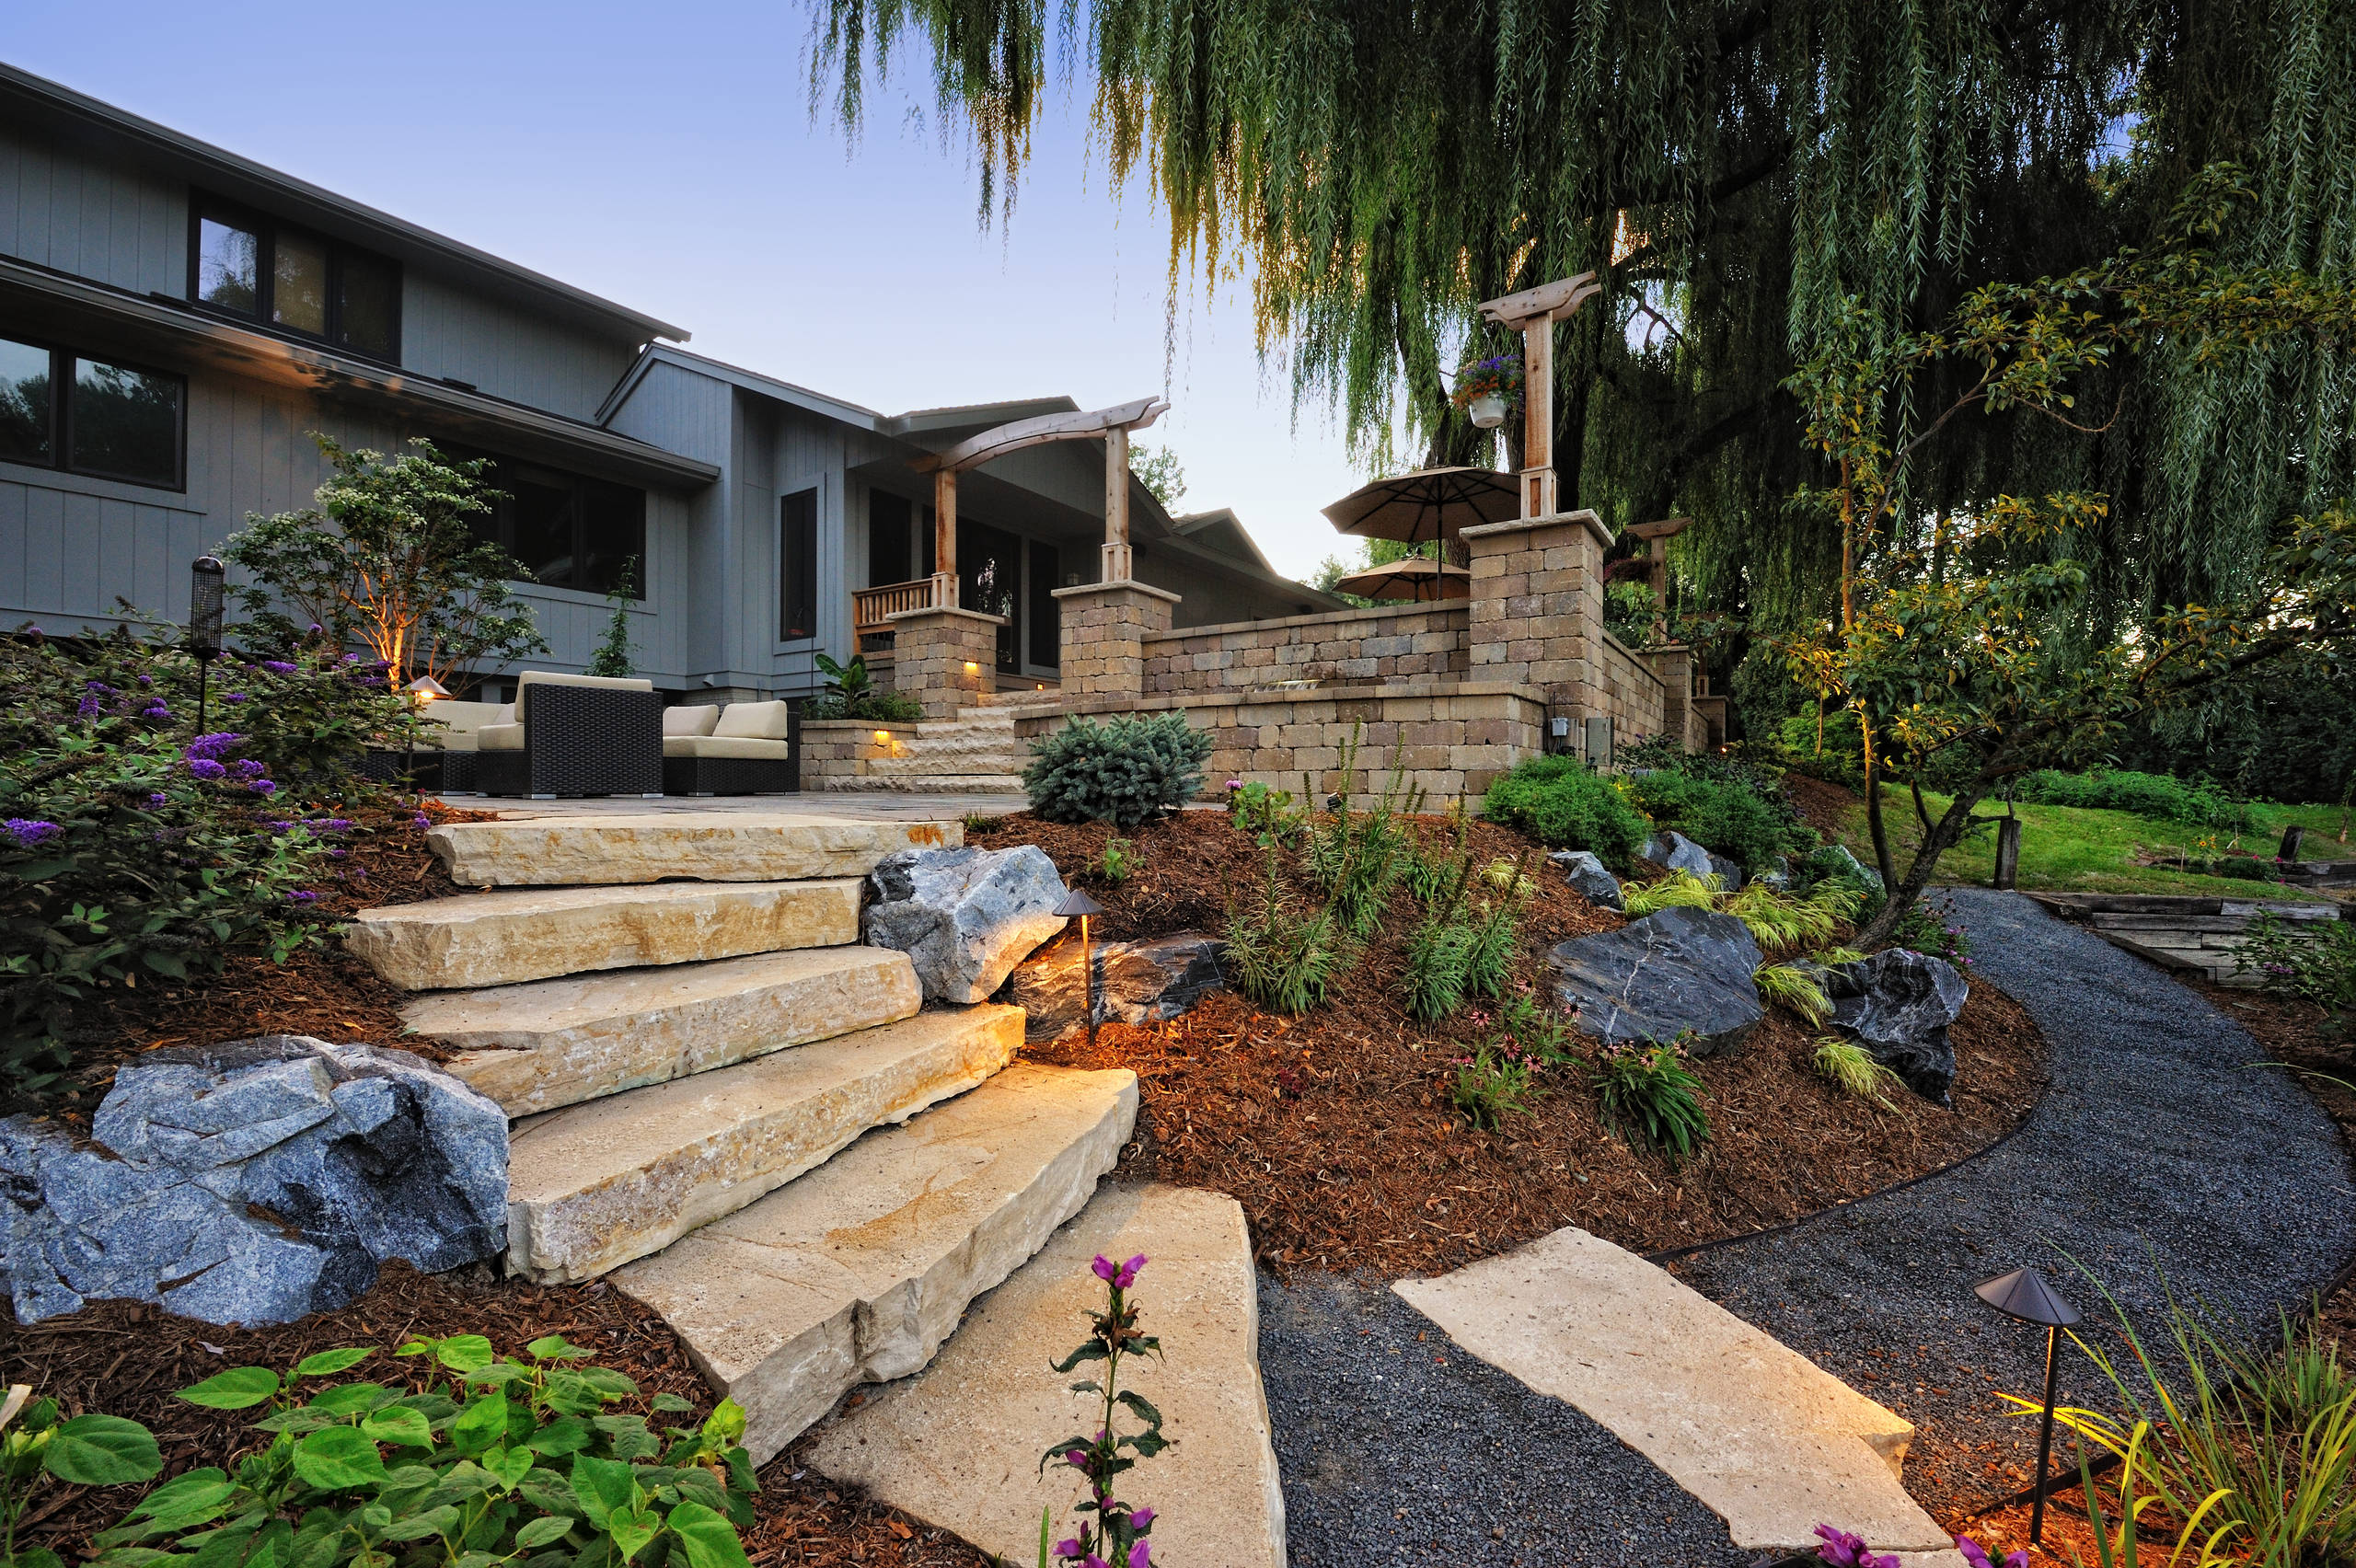 15 Stunning Rustic Landscape Designs That Will Take Your ... on Landscape Design Ideas  id=98687